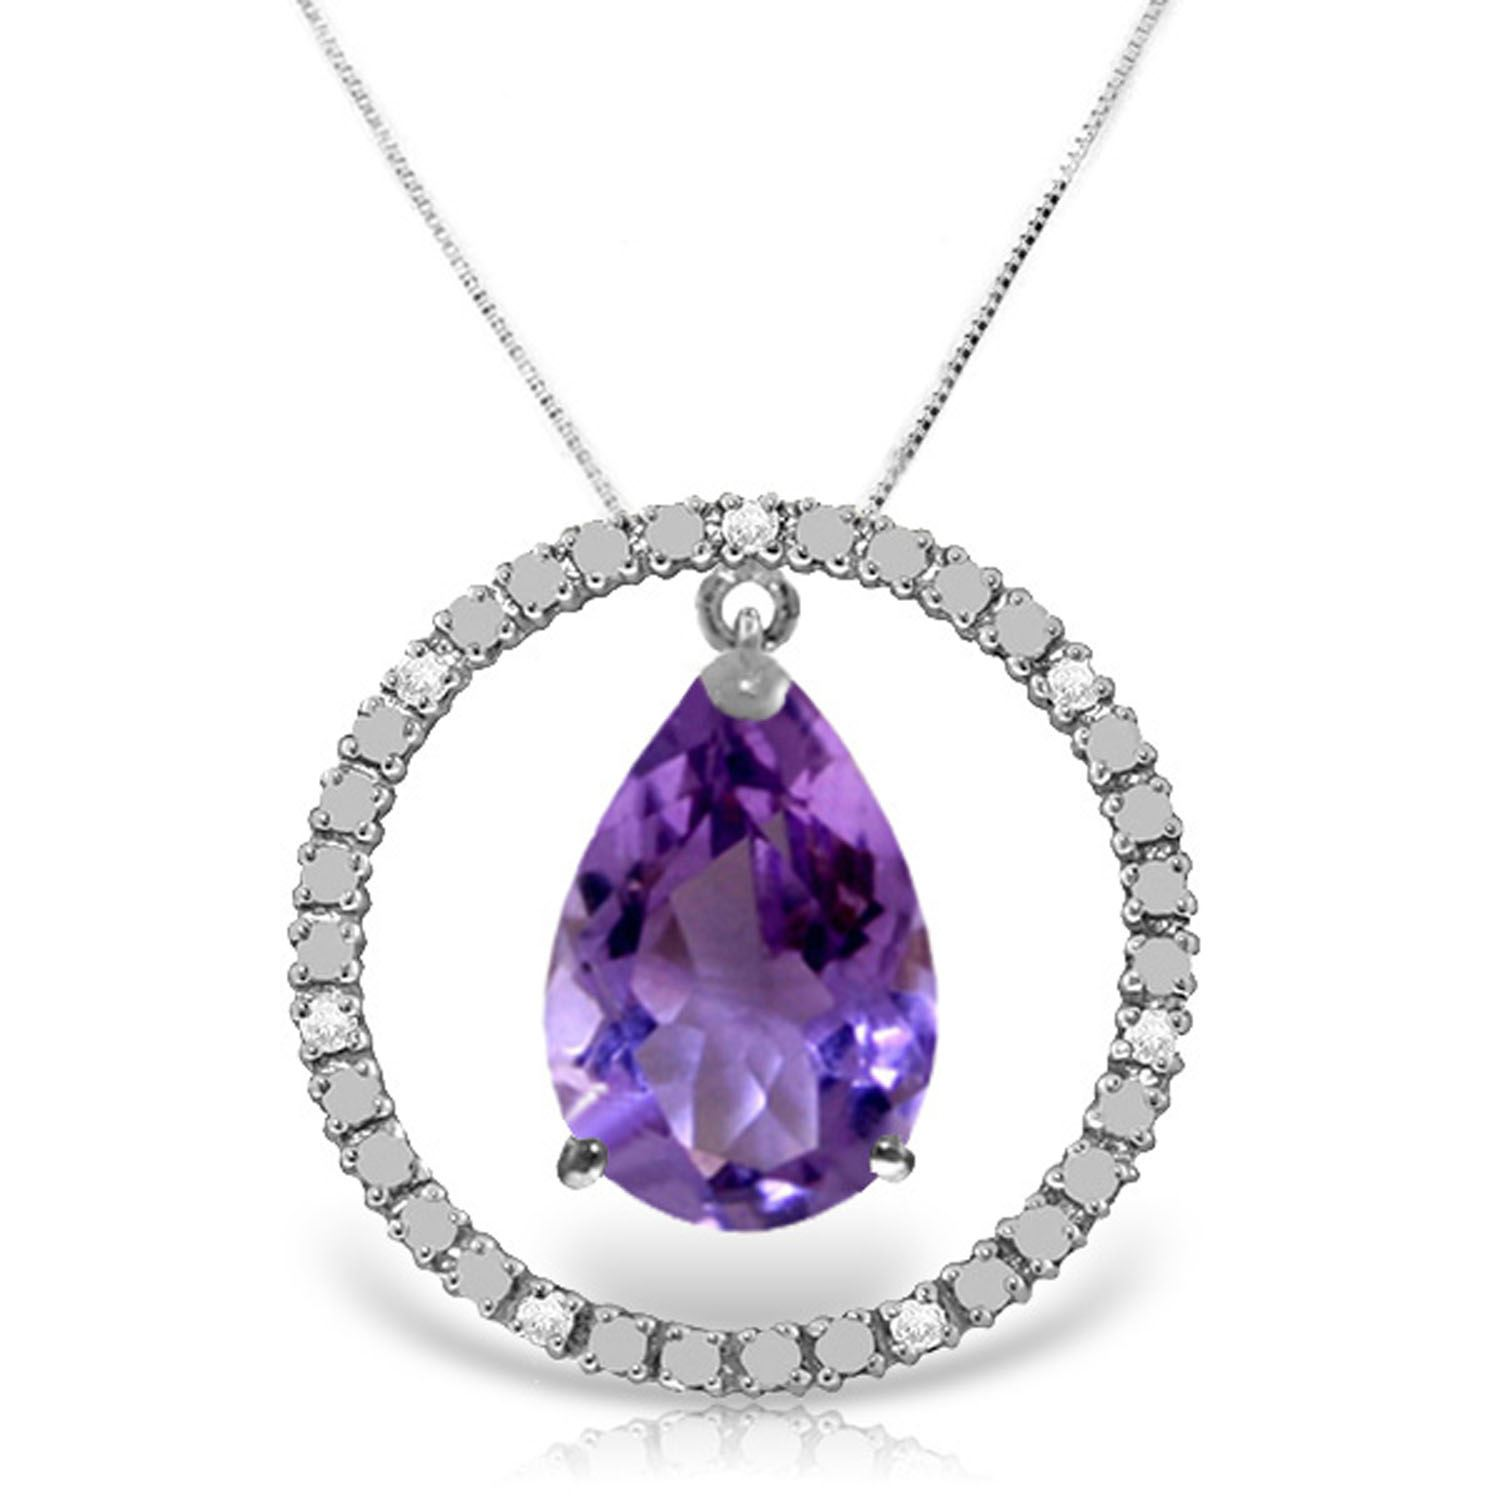 ALARRI 7 Carat 14K Solid Gold Love All Amethyst Necklace with 20 Inch Chain Length